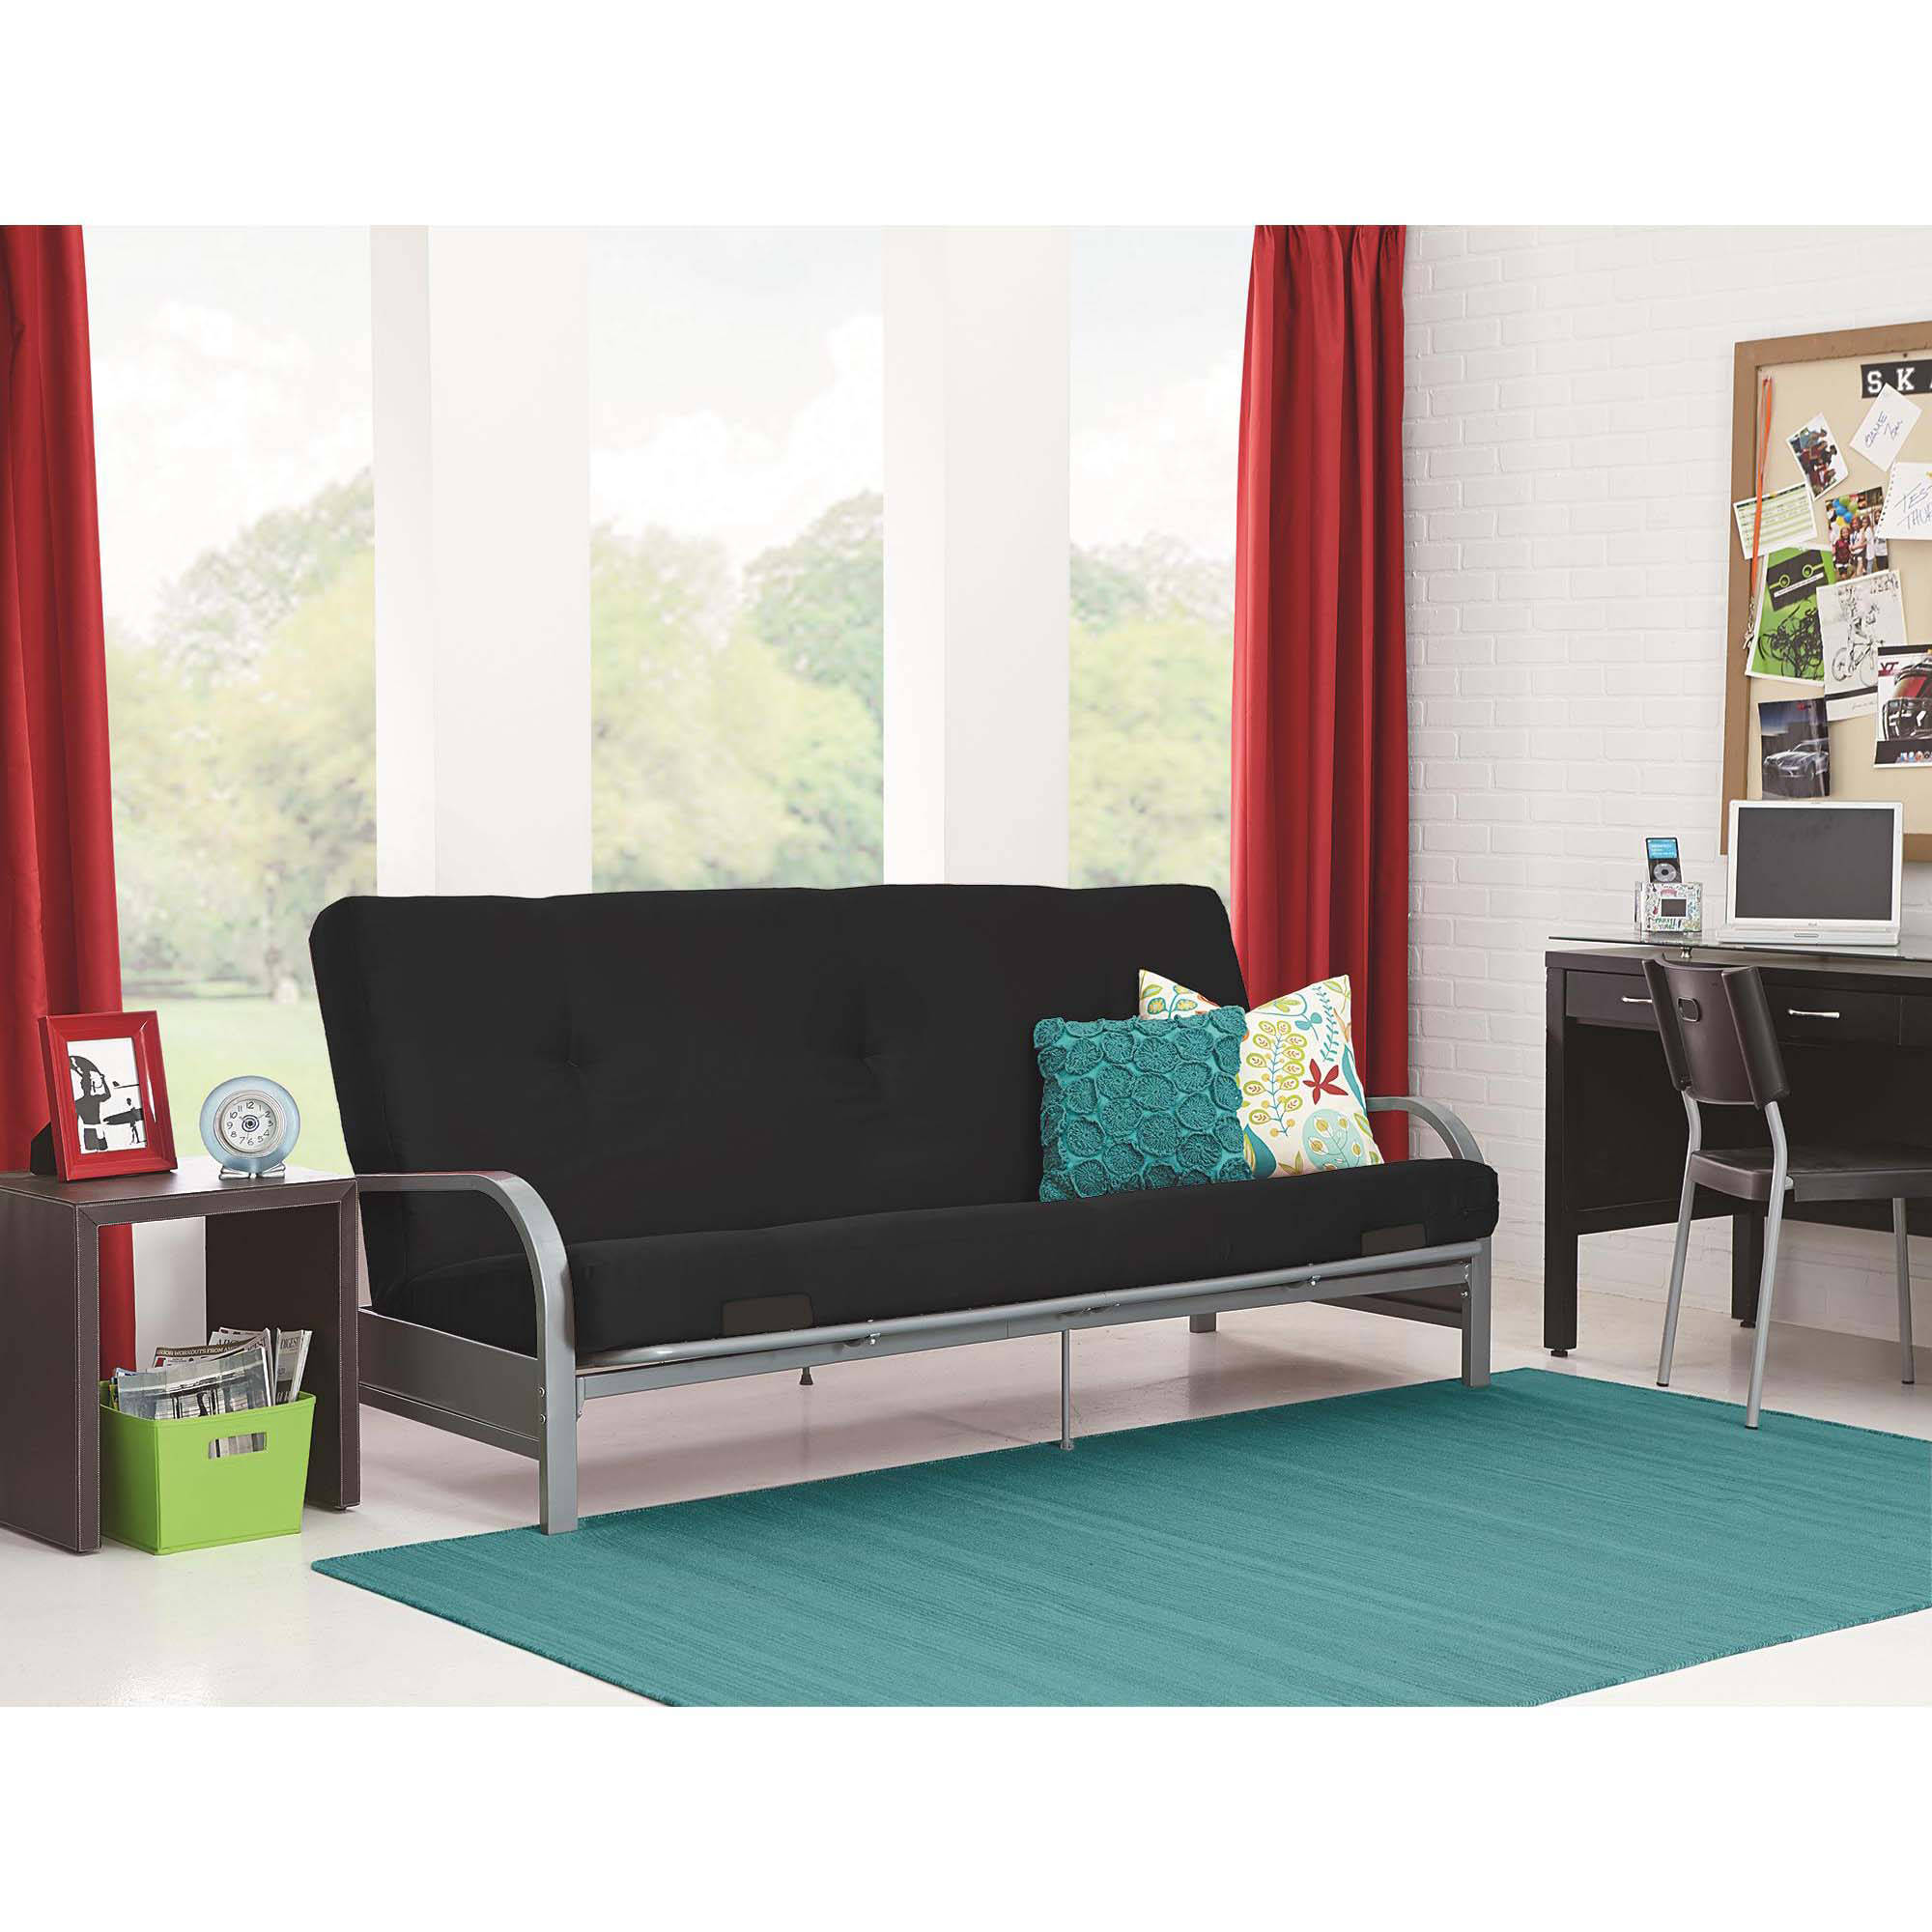 colors arm ip metal full multiple mattress mainstays futons walmart with com frame black size futon